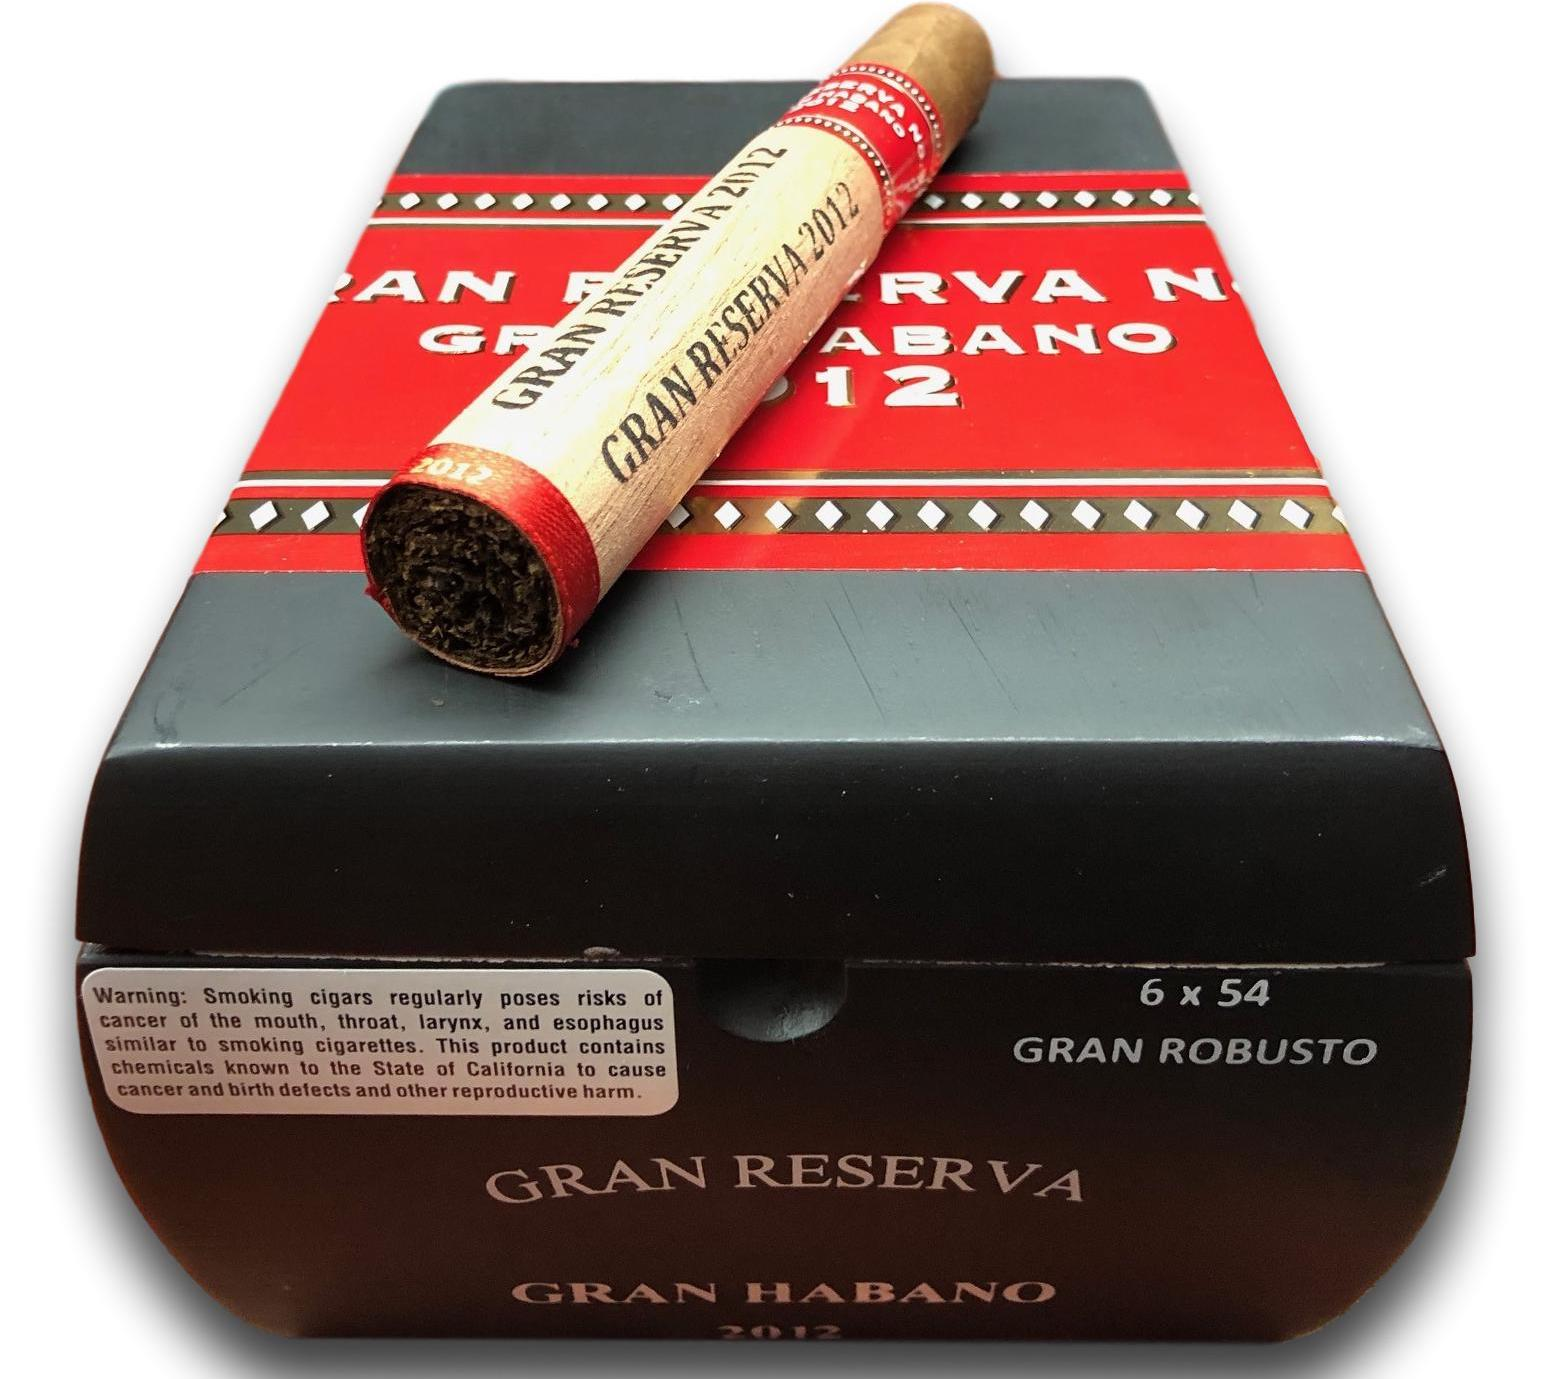 Cigar News: Gran Habano Corojo No. 5 Gran Reserva 2012 Released